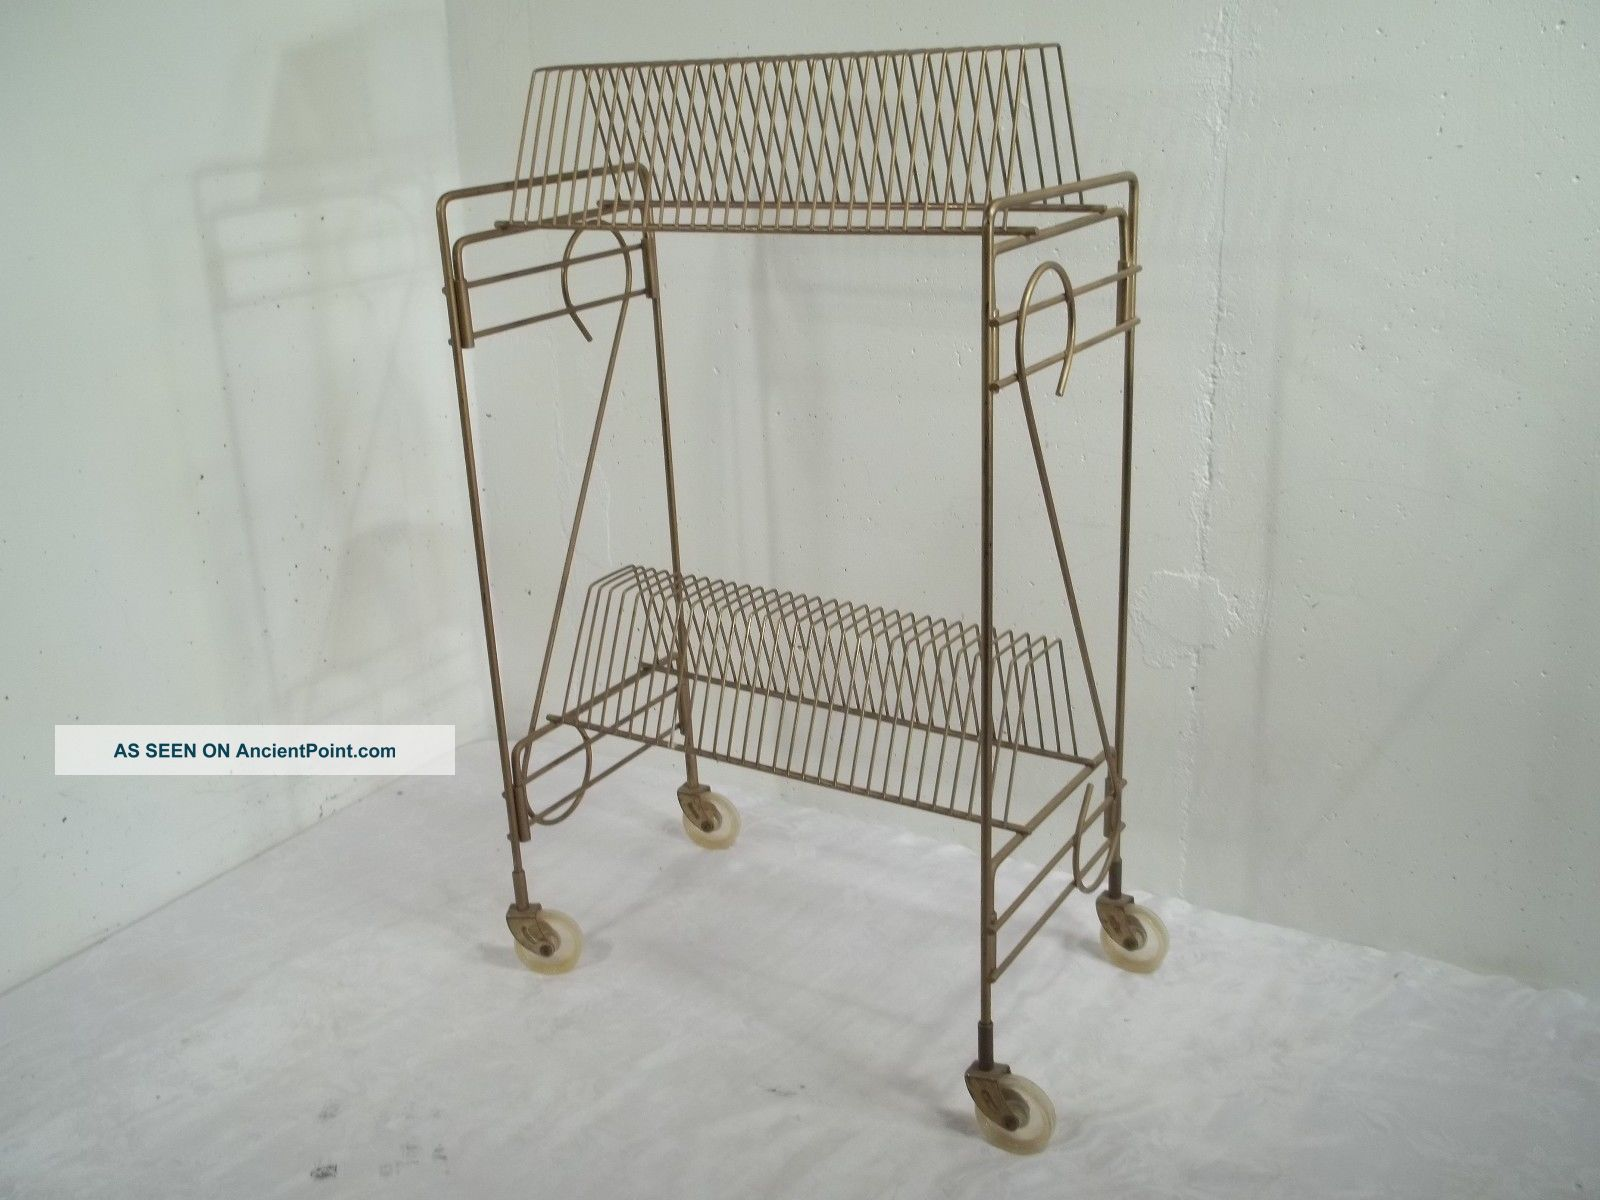 Vintage Mid Century Modern Record Rack Stand Cart Holder Holds Wheels Holds 58 Mid-Century Modernism photo